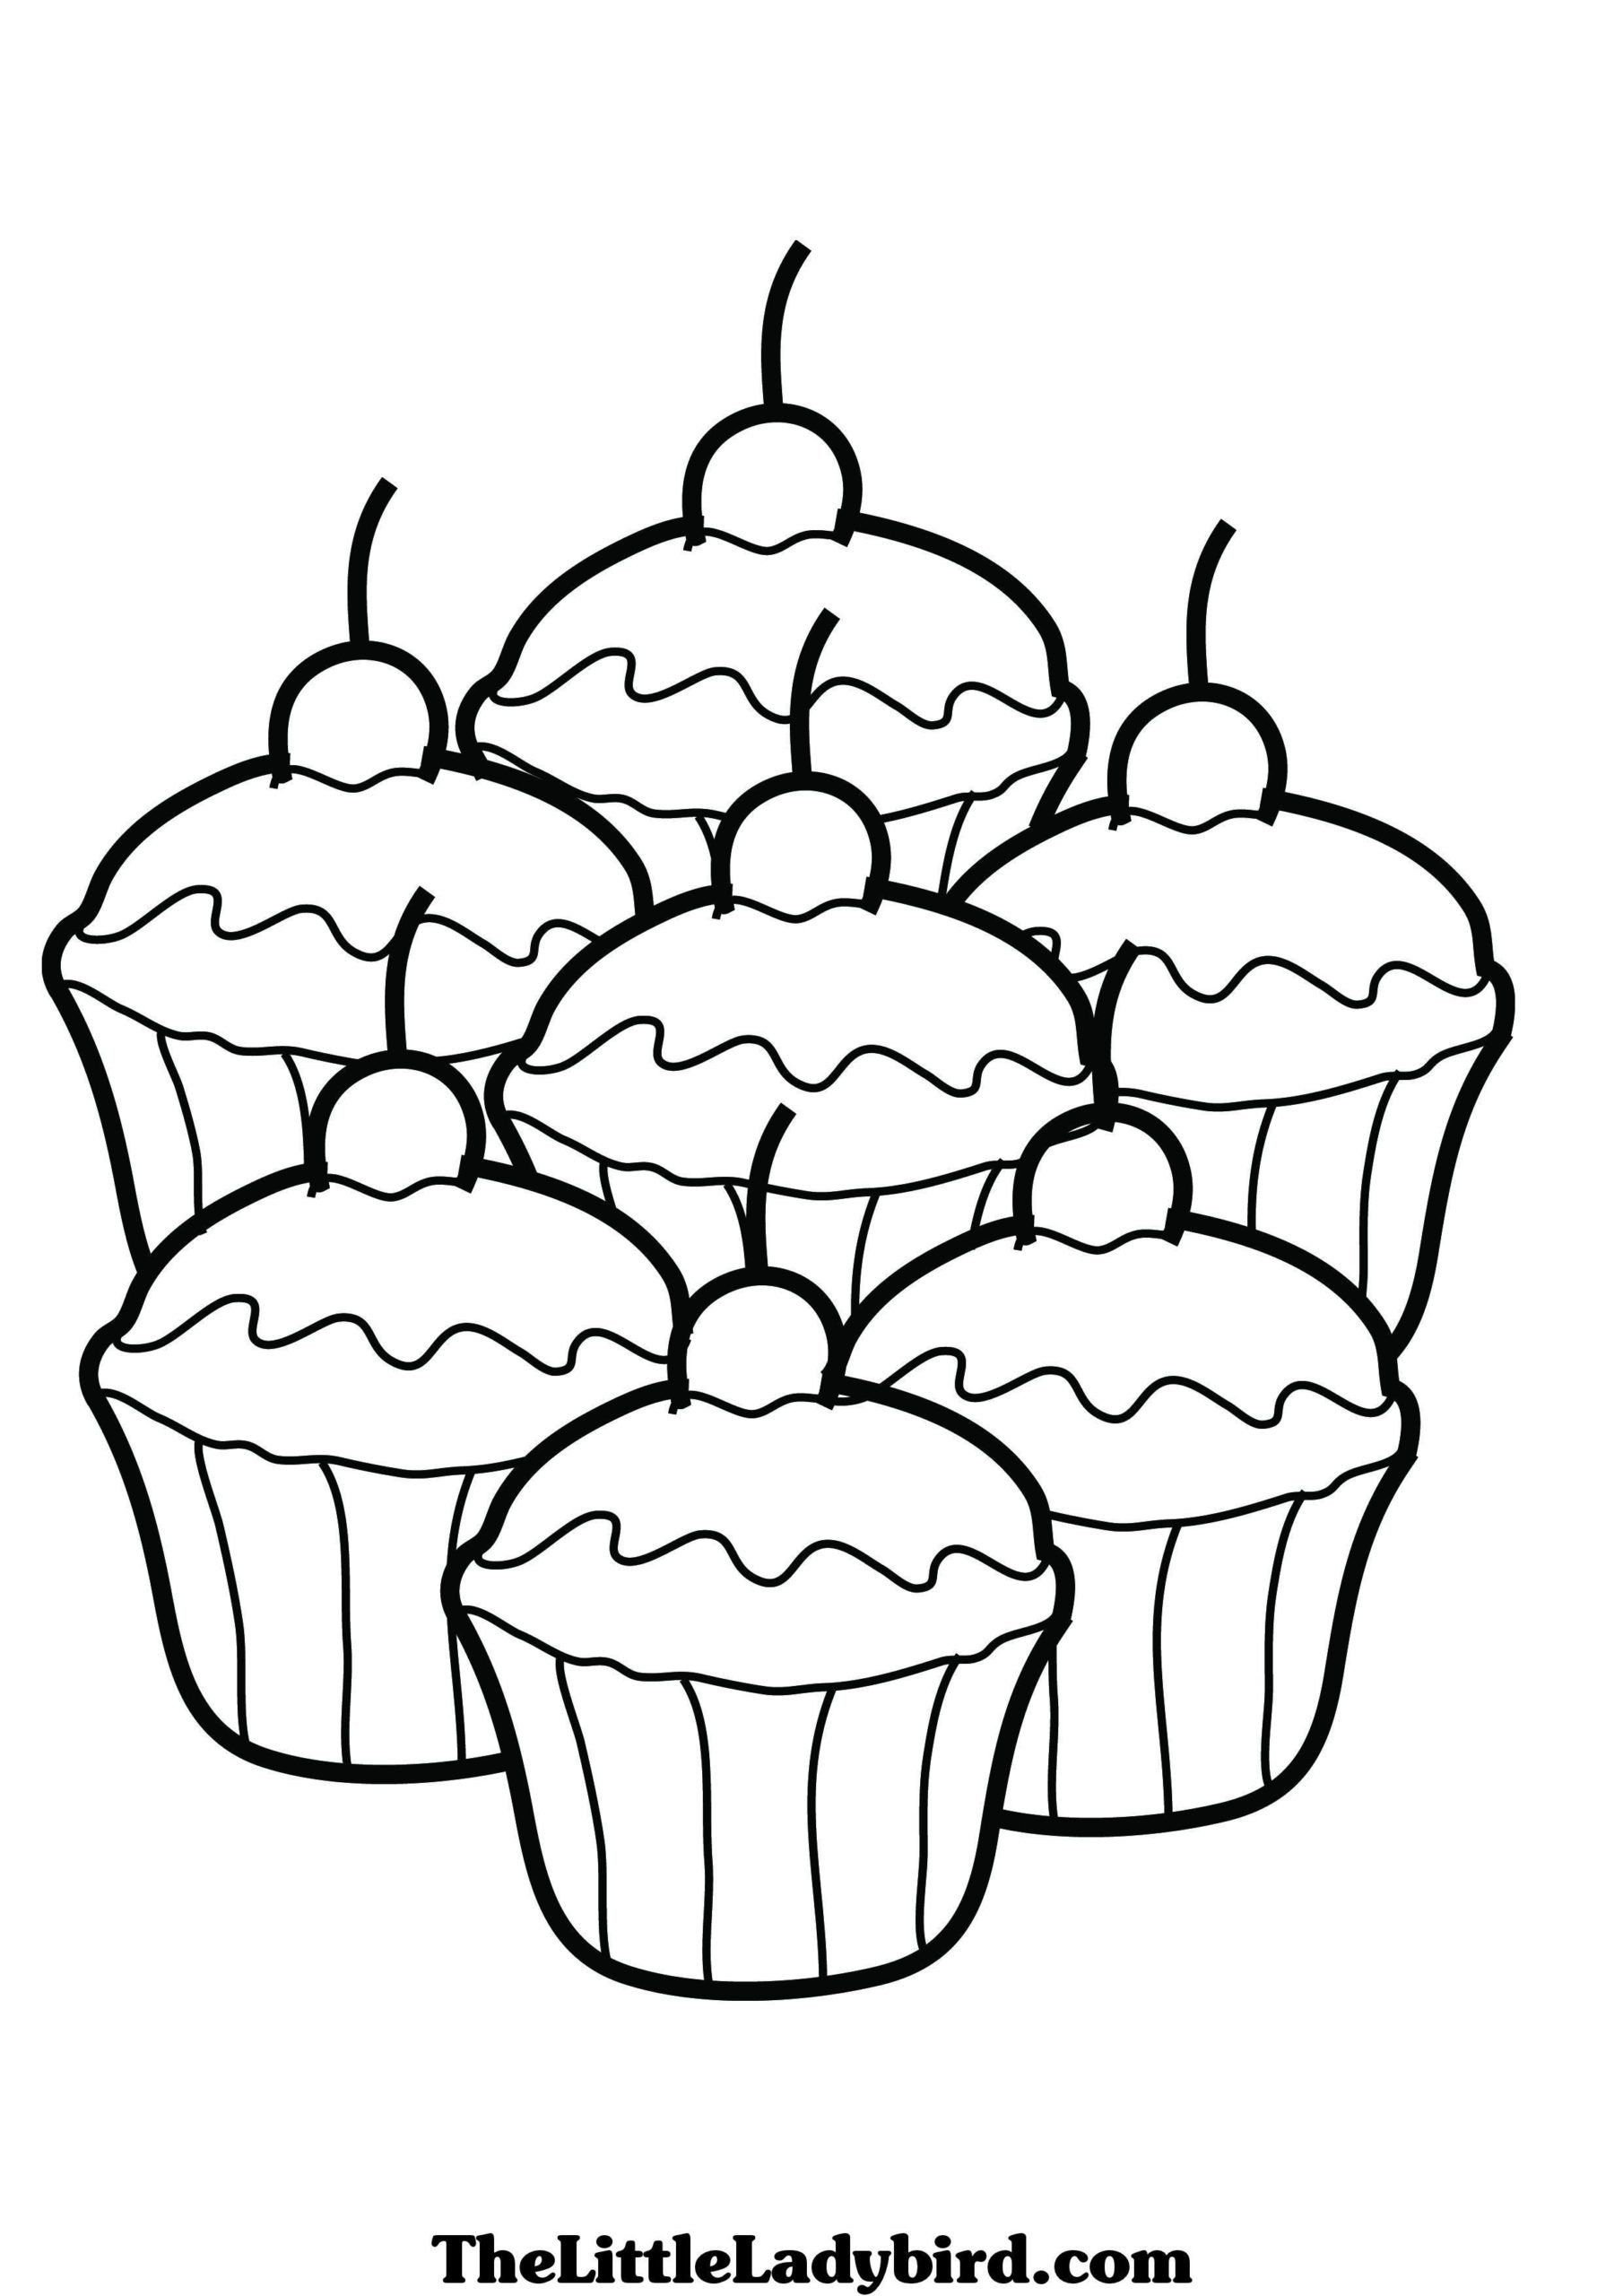 Birthday Cupcake Coloring Pages Coloring Pages Top Awesome Food Cupcakes Happy Birthday Cupcake Coloring Pages Cartoon Coloring Pages Food Coloring Pages